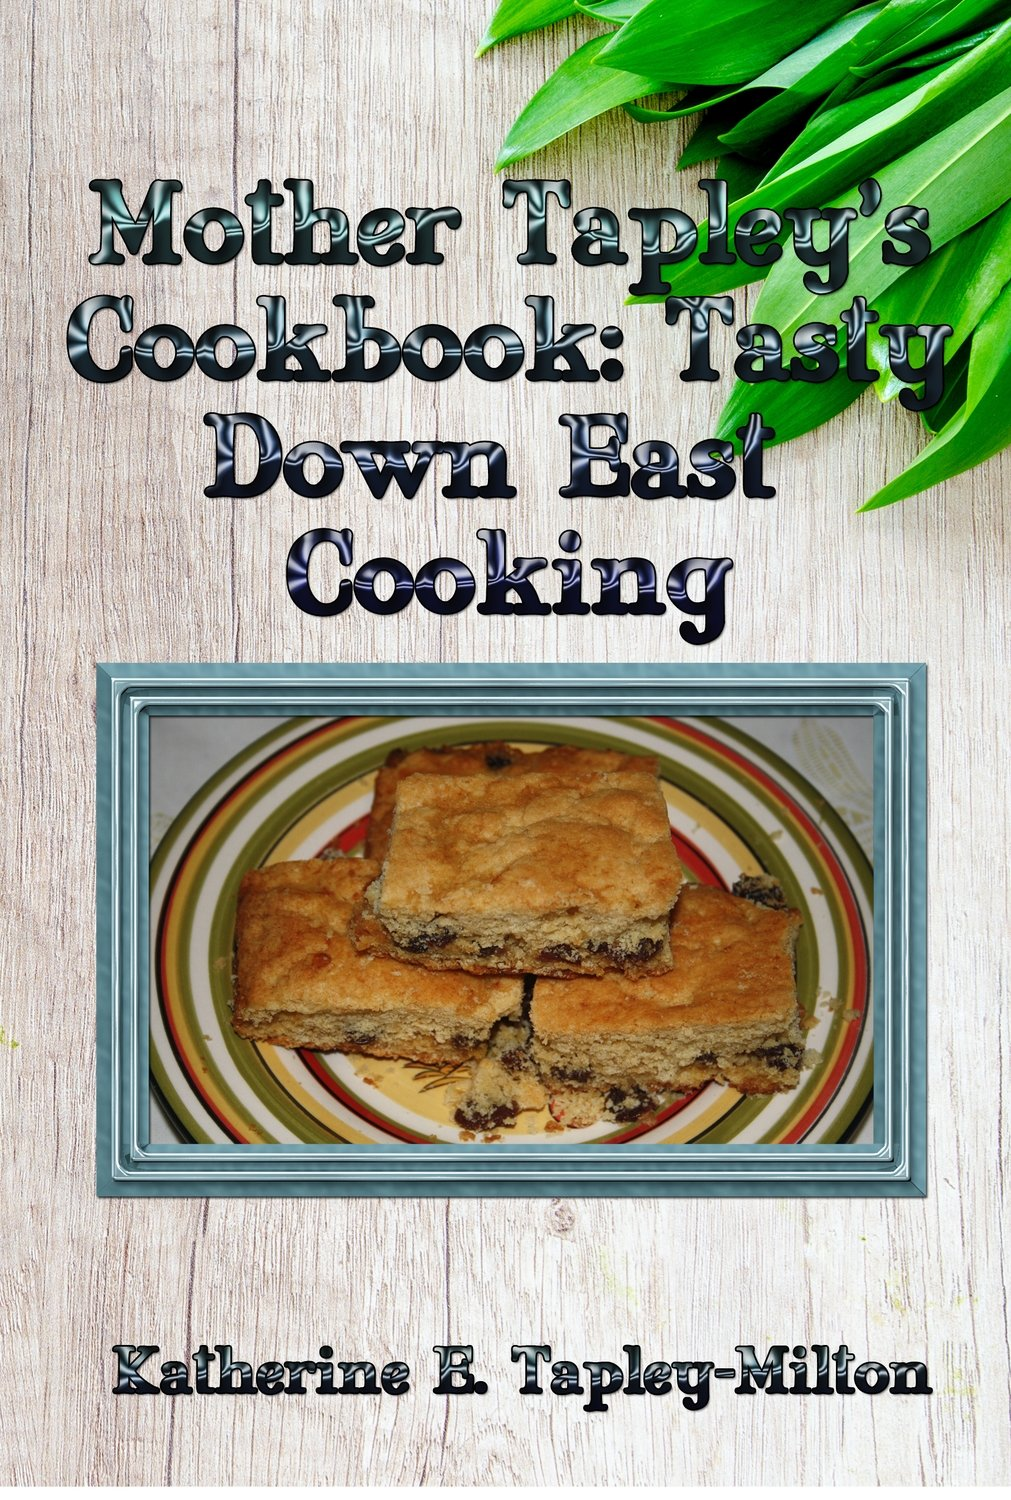 Mother Tapley's Recipe Book: Tasty Down East Cooking